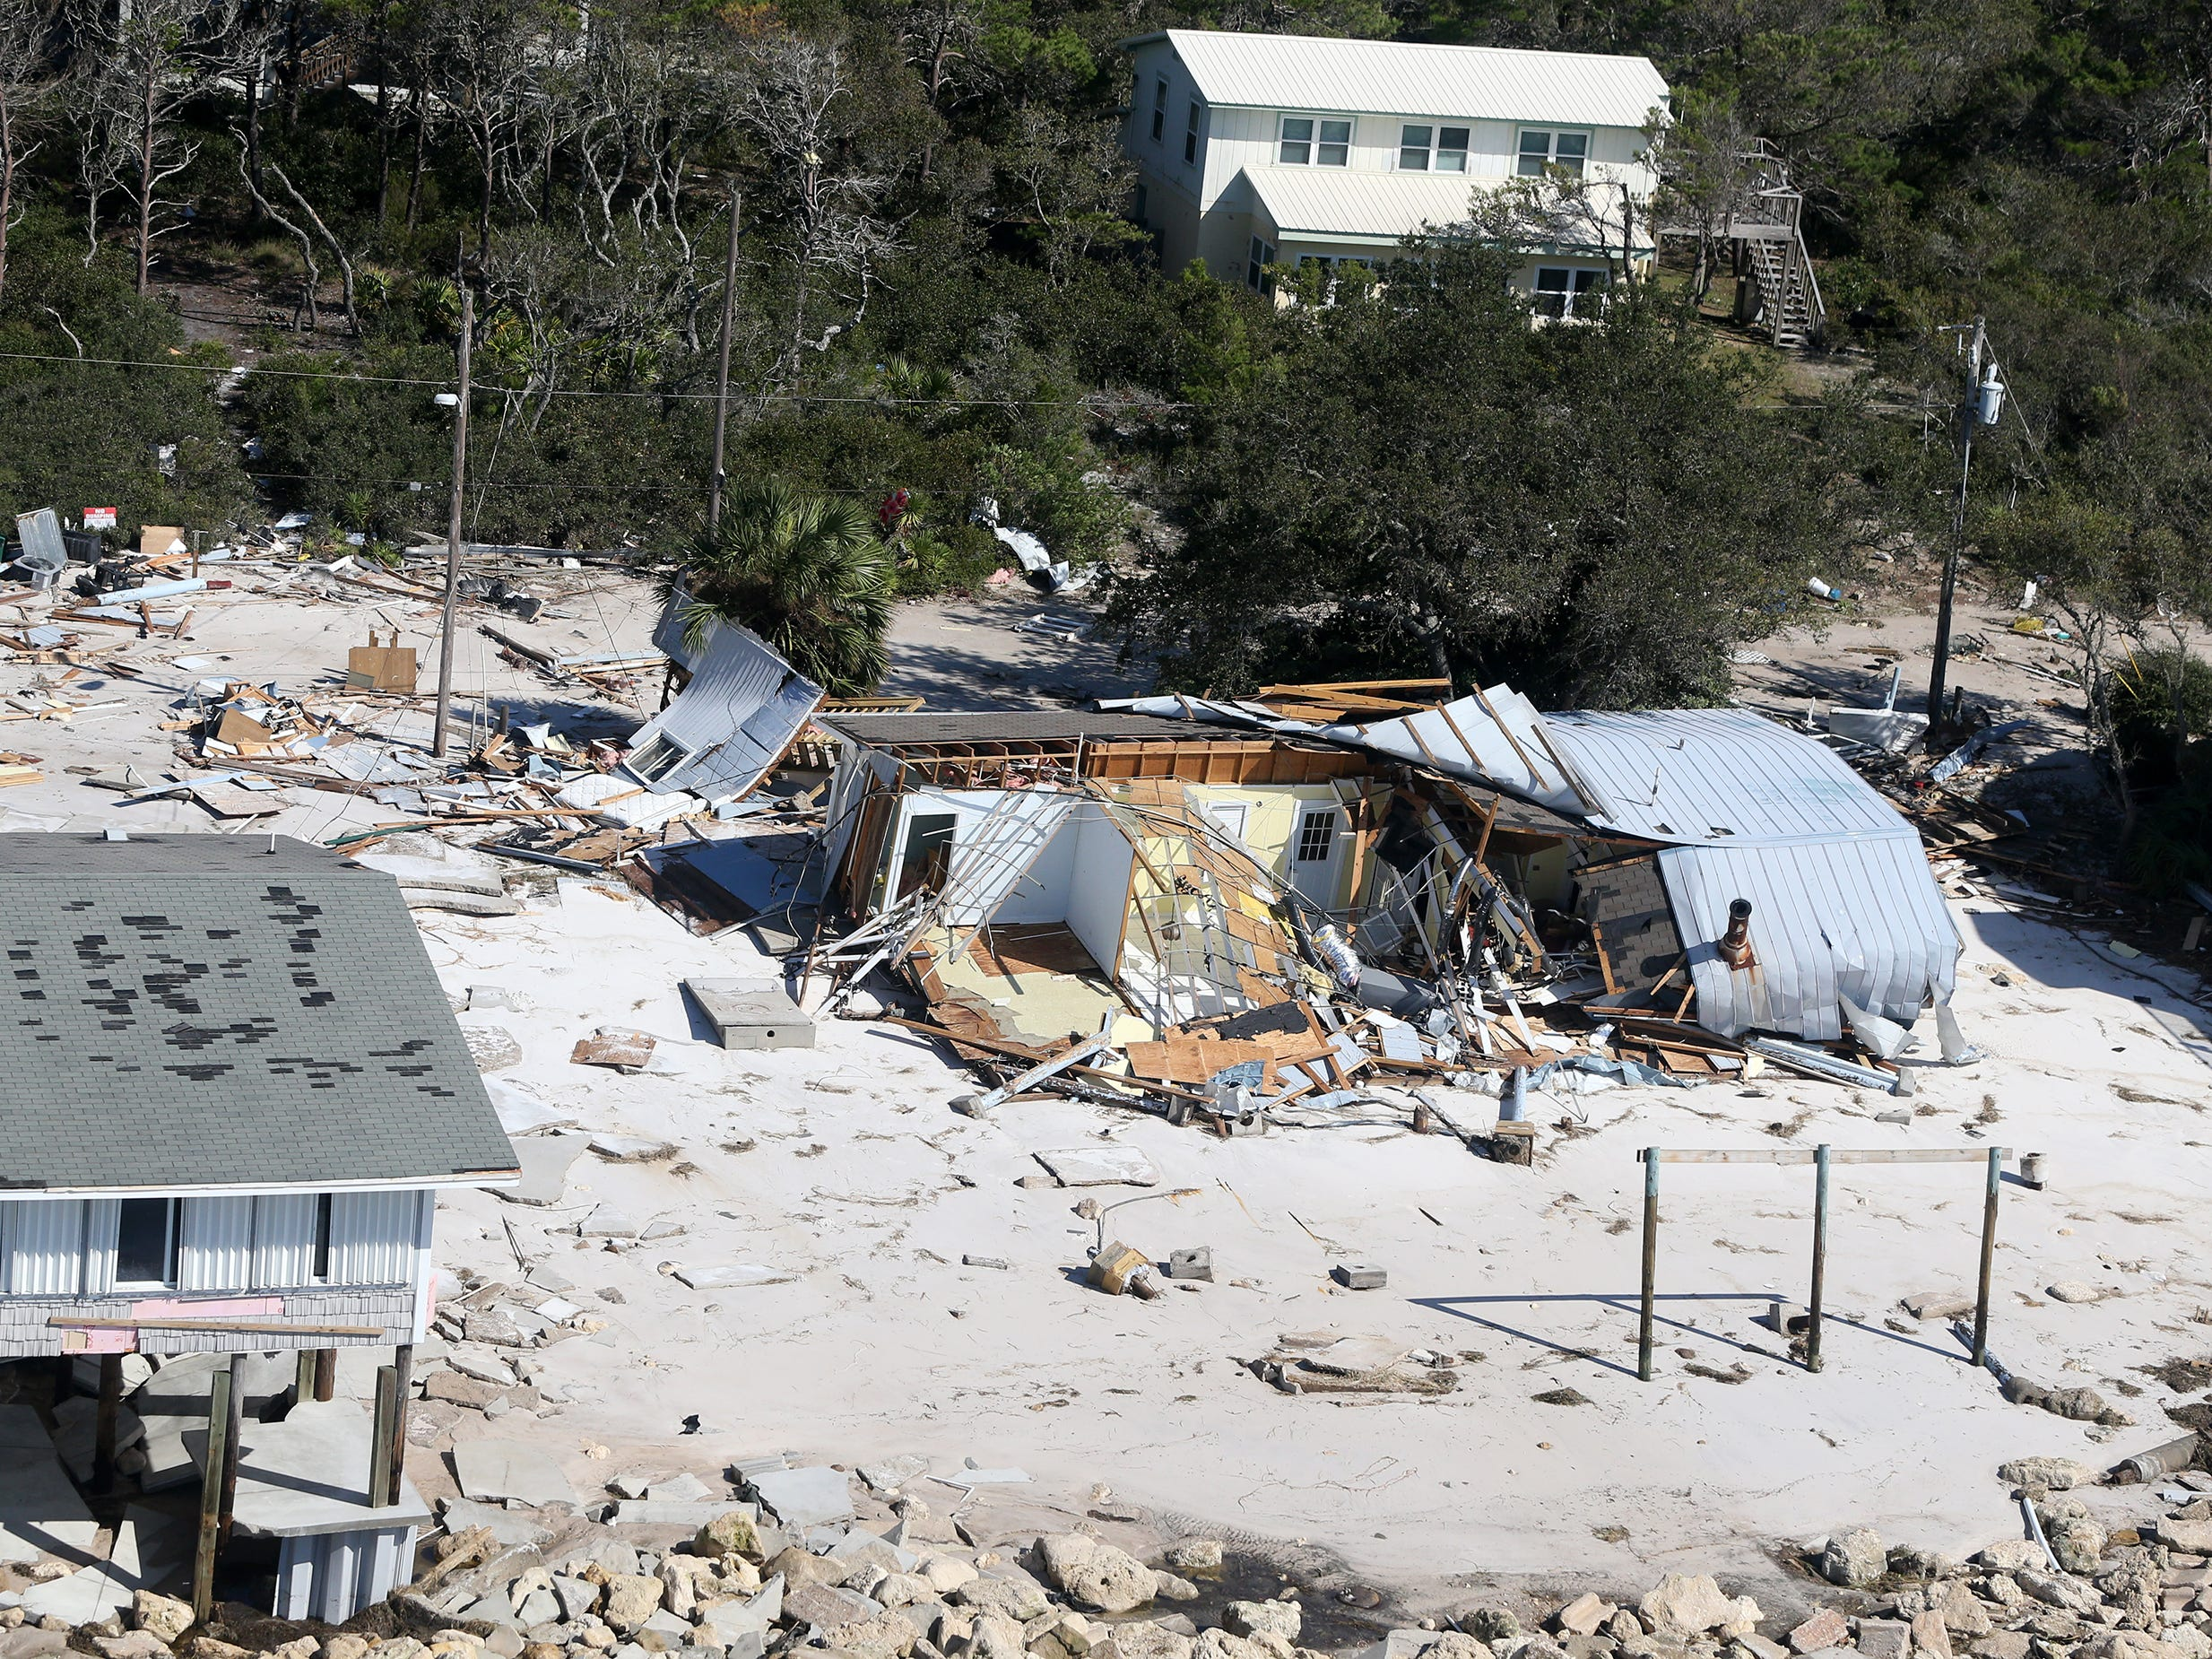 Hurricane Michael damaged several homes on Alligator Point in Franklin County, Fla., Oct. 11, 2018.